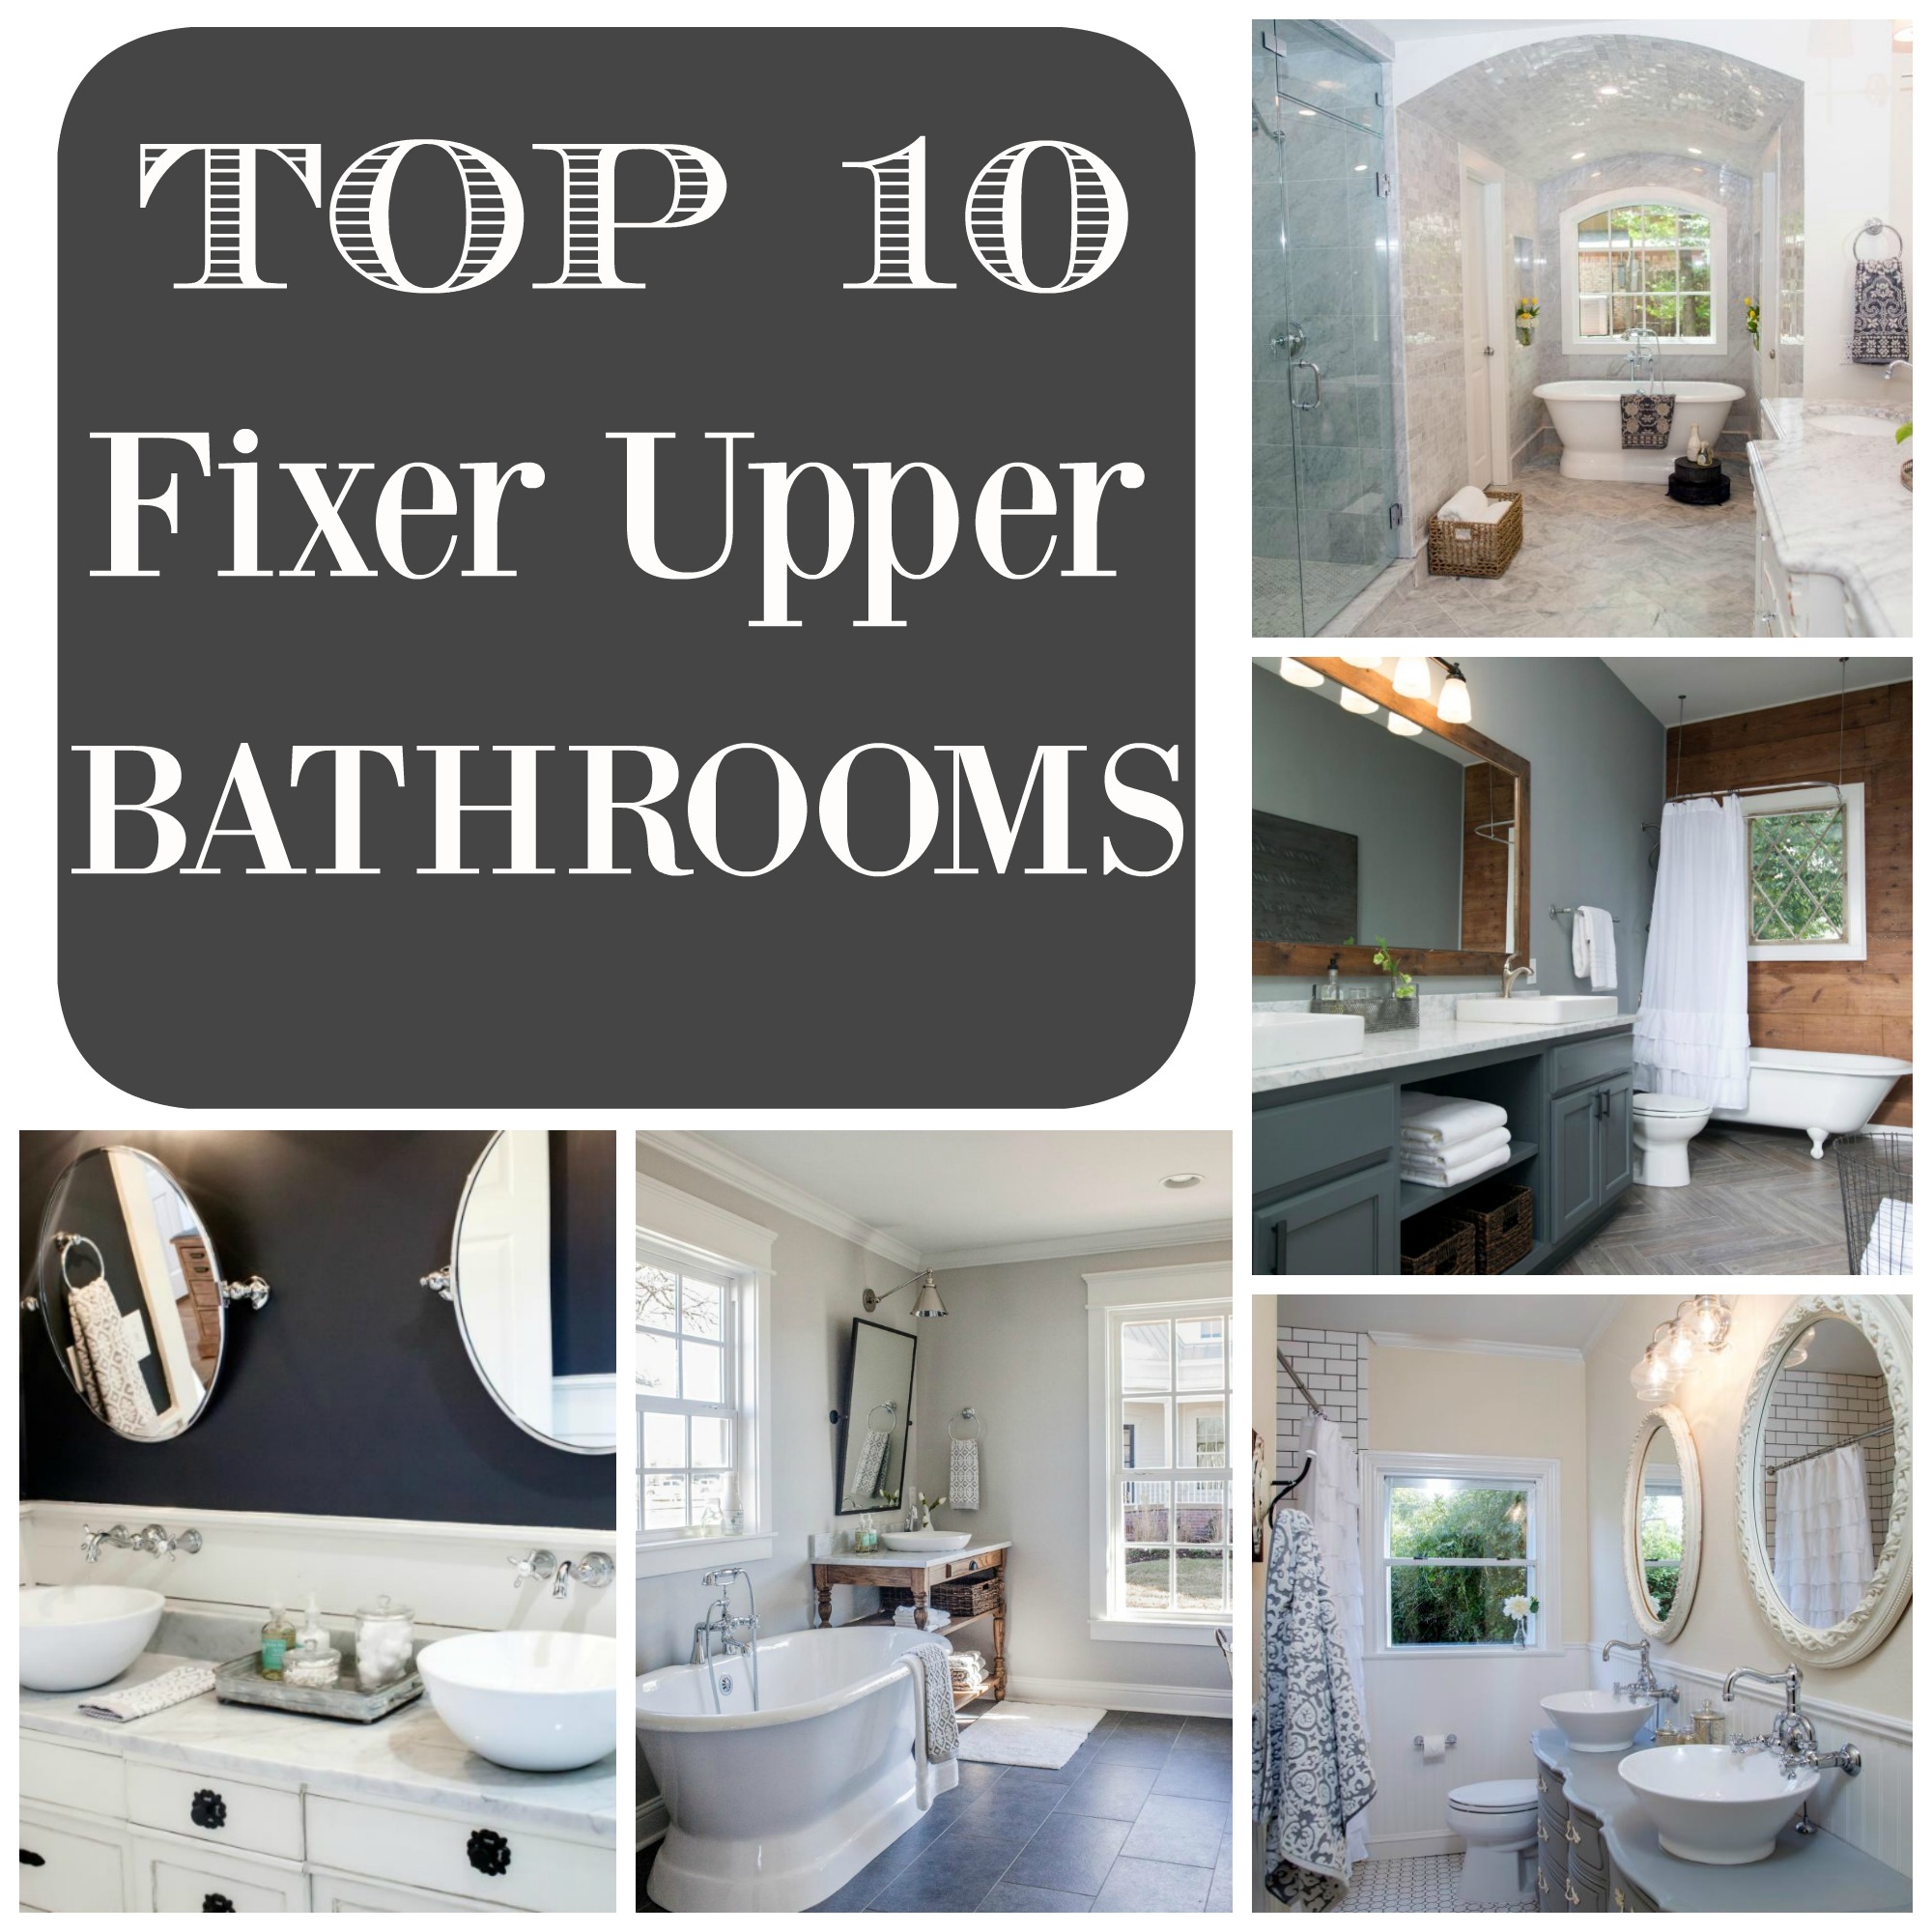 Top 10 Fixer Upper Bathrooms